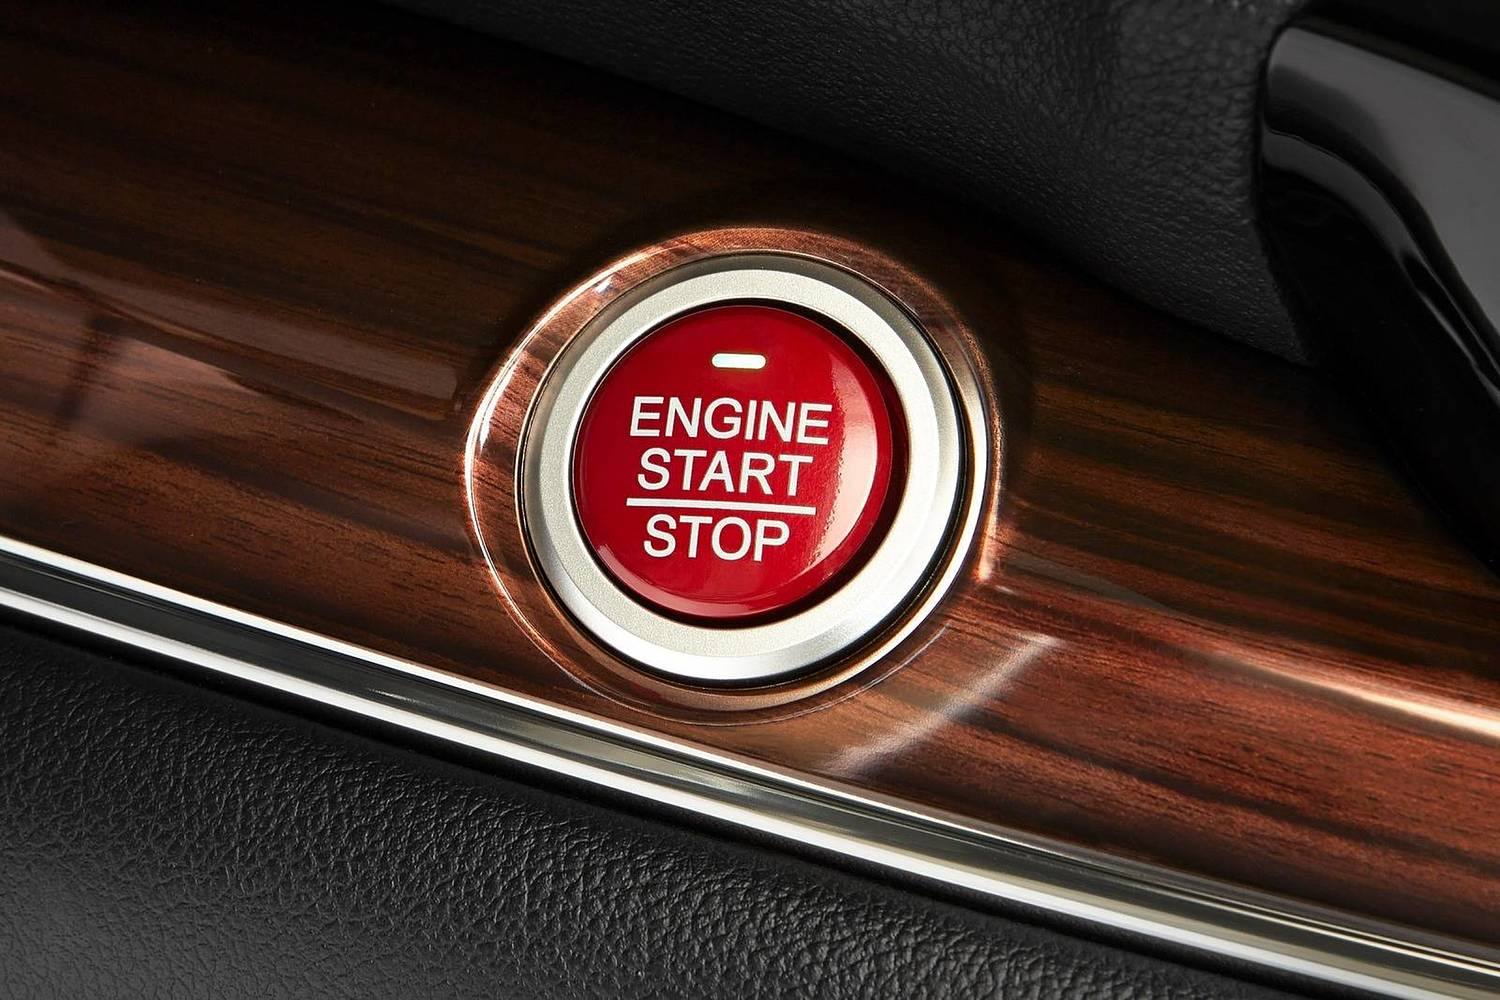 Honda CR-V Touring 4dr SUV Ignition Button Detail (2015 model year shown)